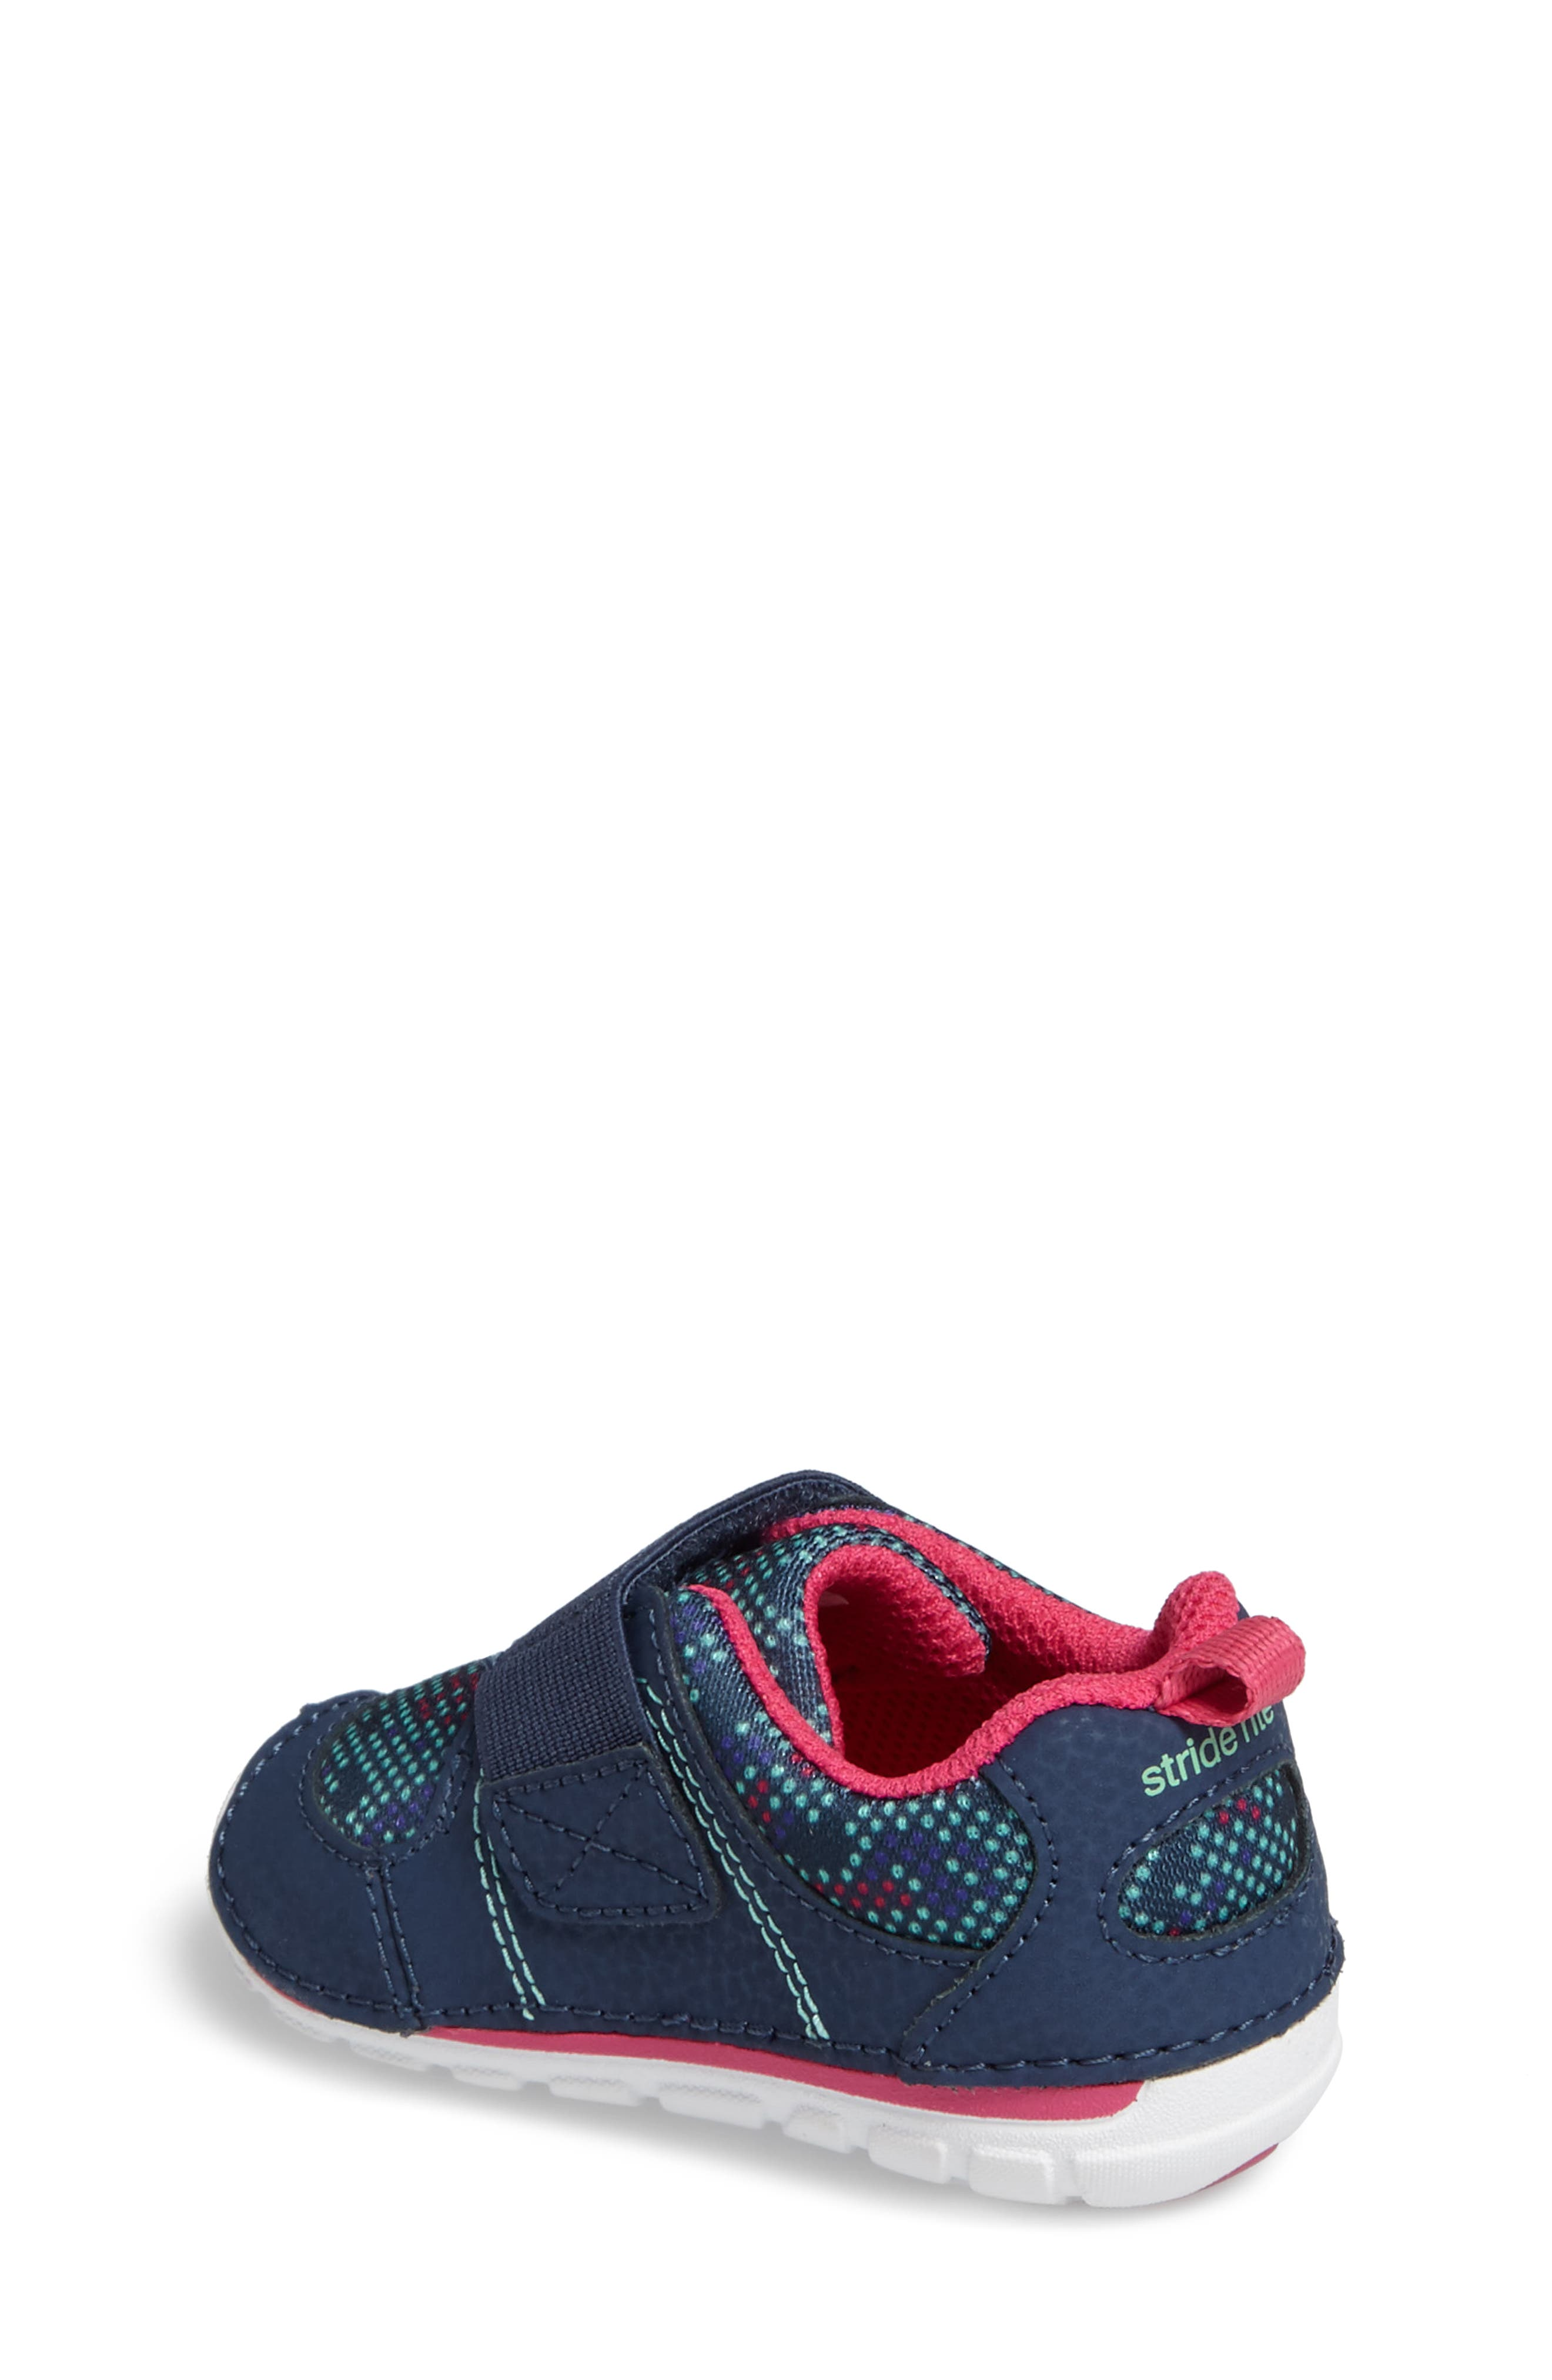 Soft Motion<sup>™</sup> Ripley Sneaker,                             Alternate thumbnail 2, color,                             410